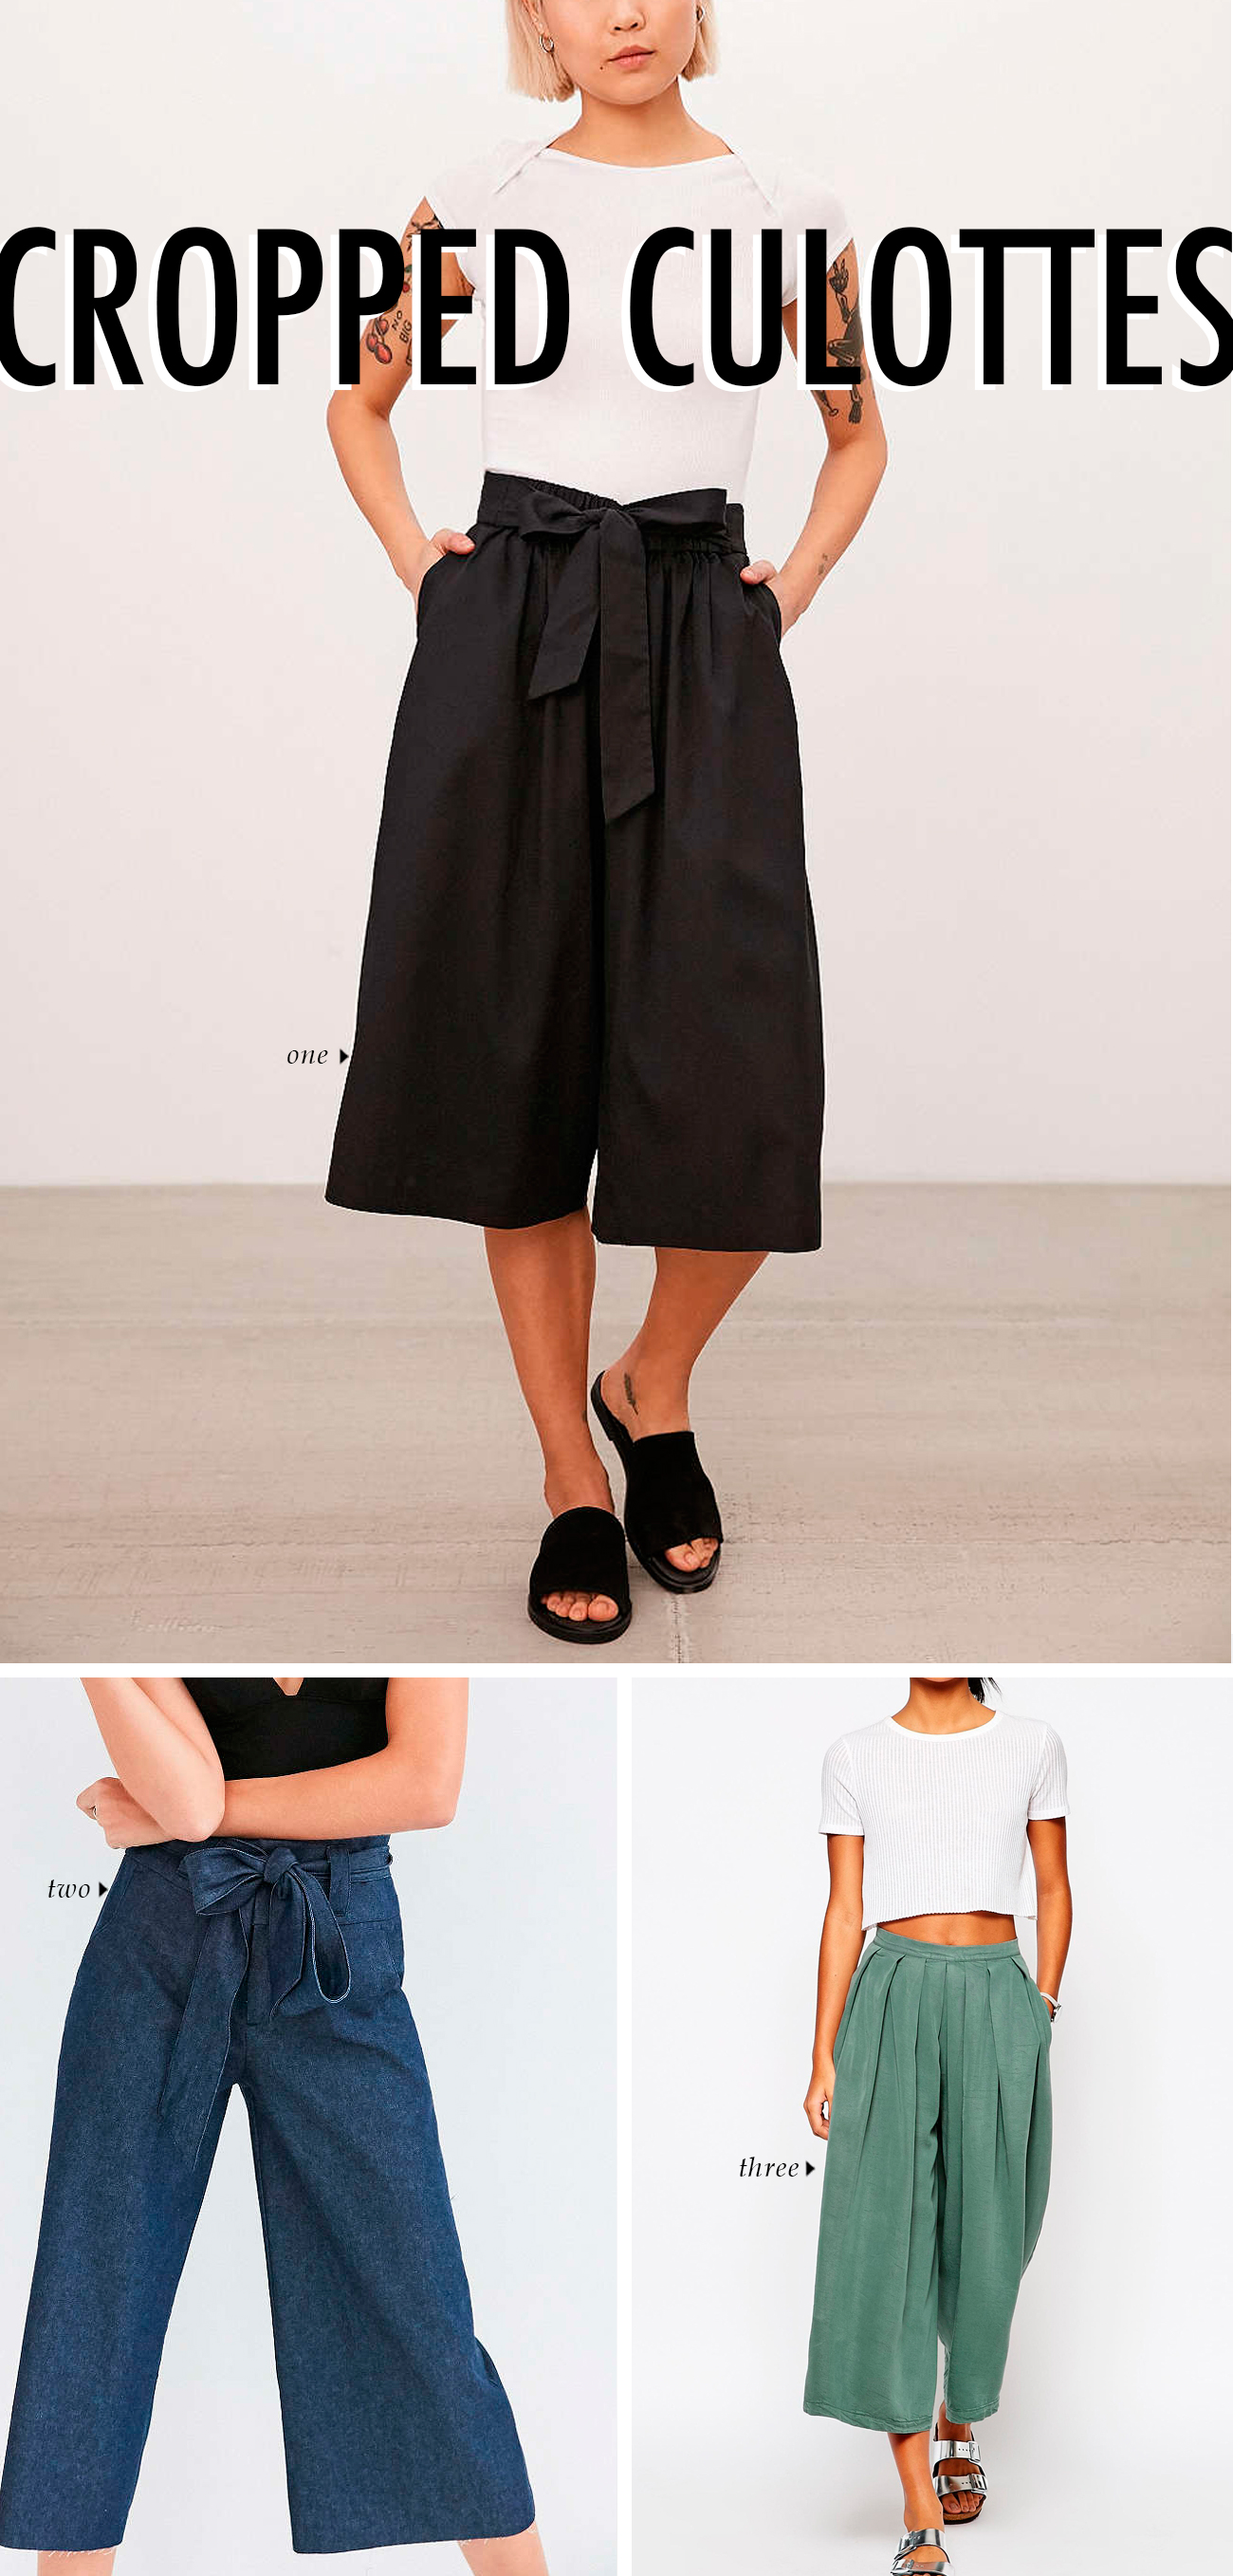 spring summer 2016 clothing trends - CROPPED CULOTTES #trends